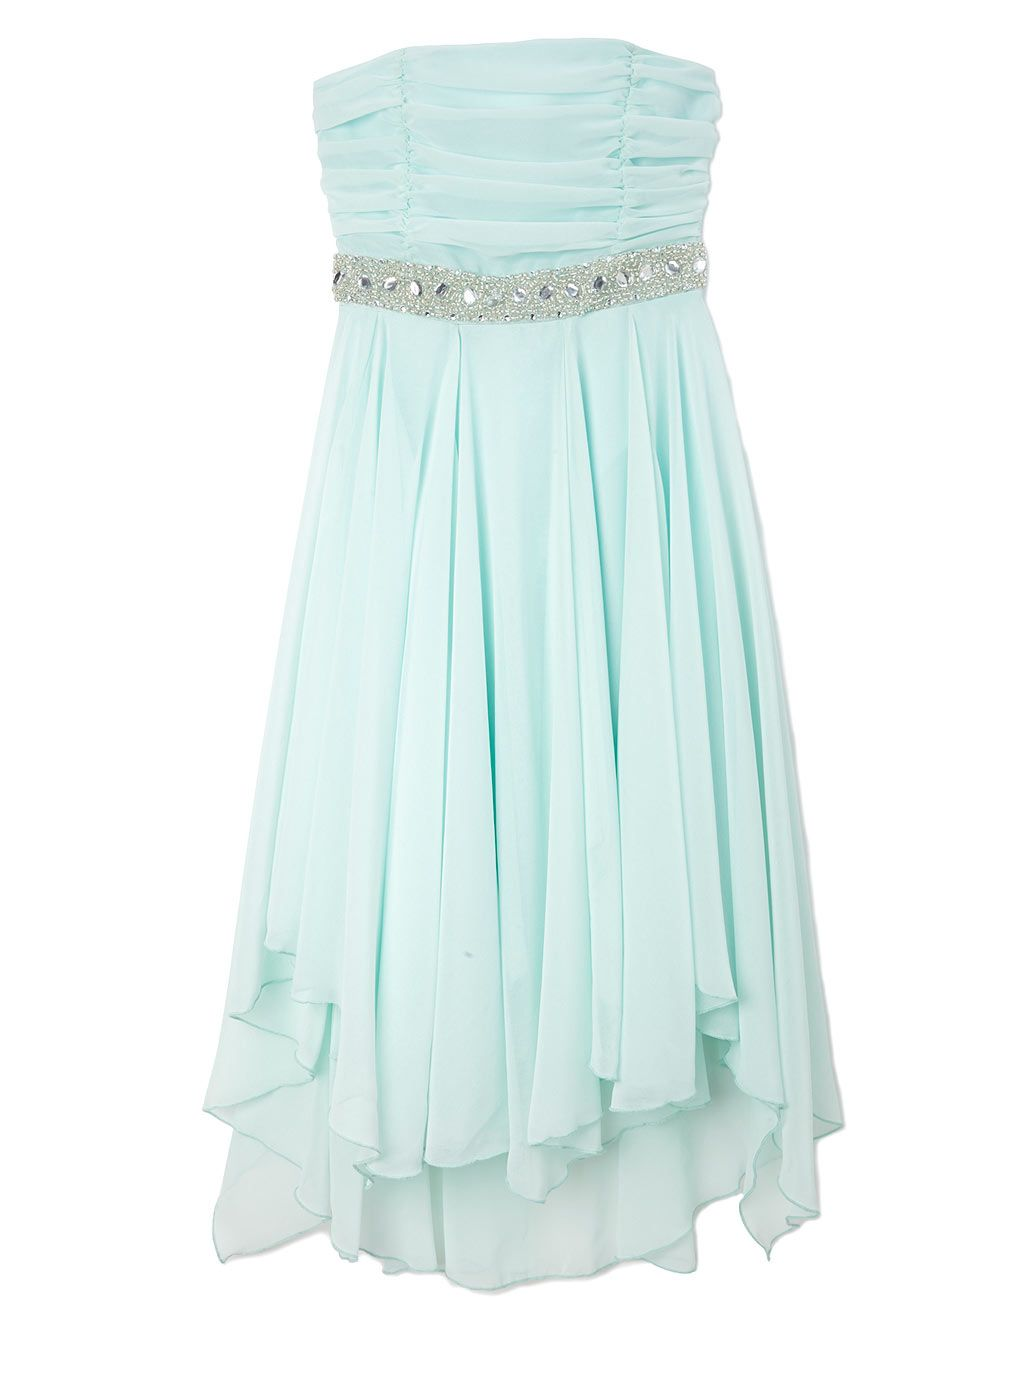 party dresses for girls age 12 - Google Search | Dresses ...